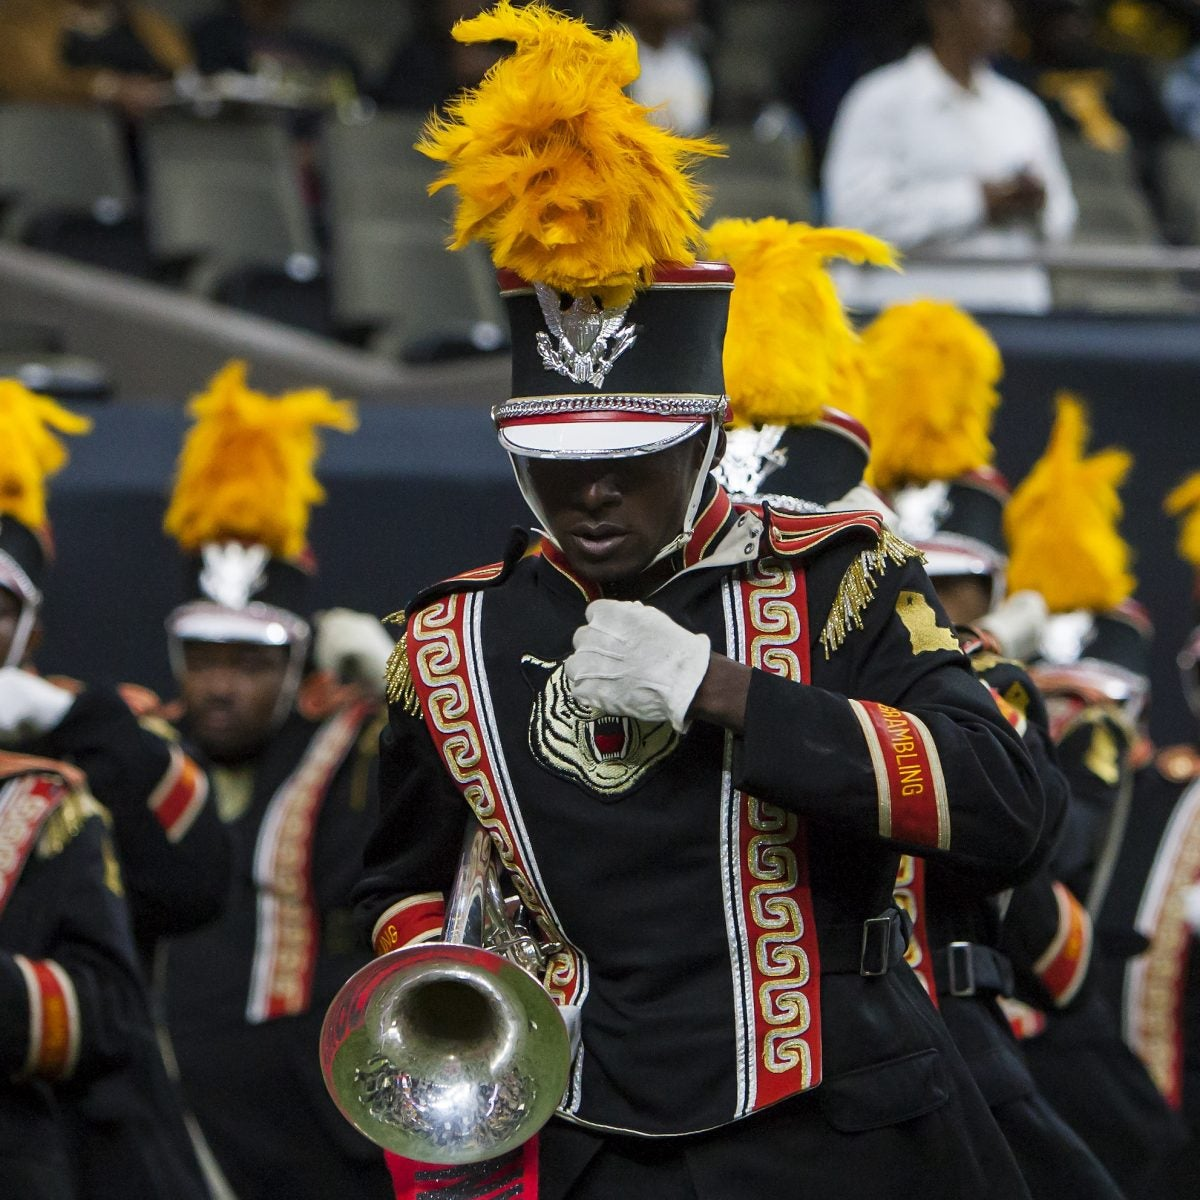 Grambling State University Shooting Leaves One Person Dead, Multiple Injured